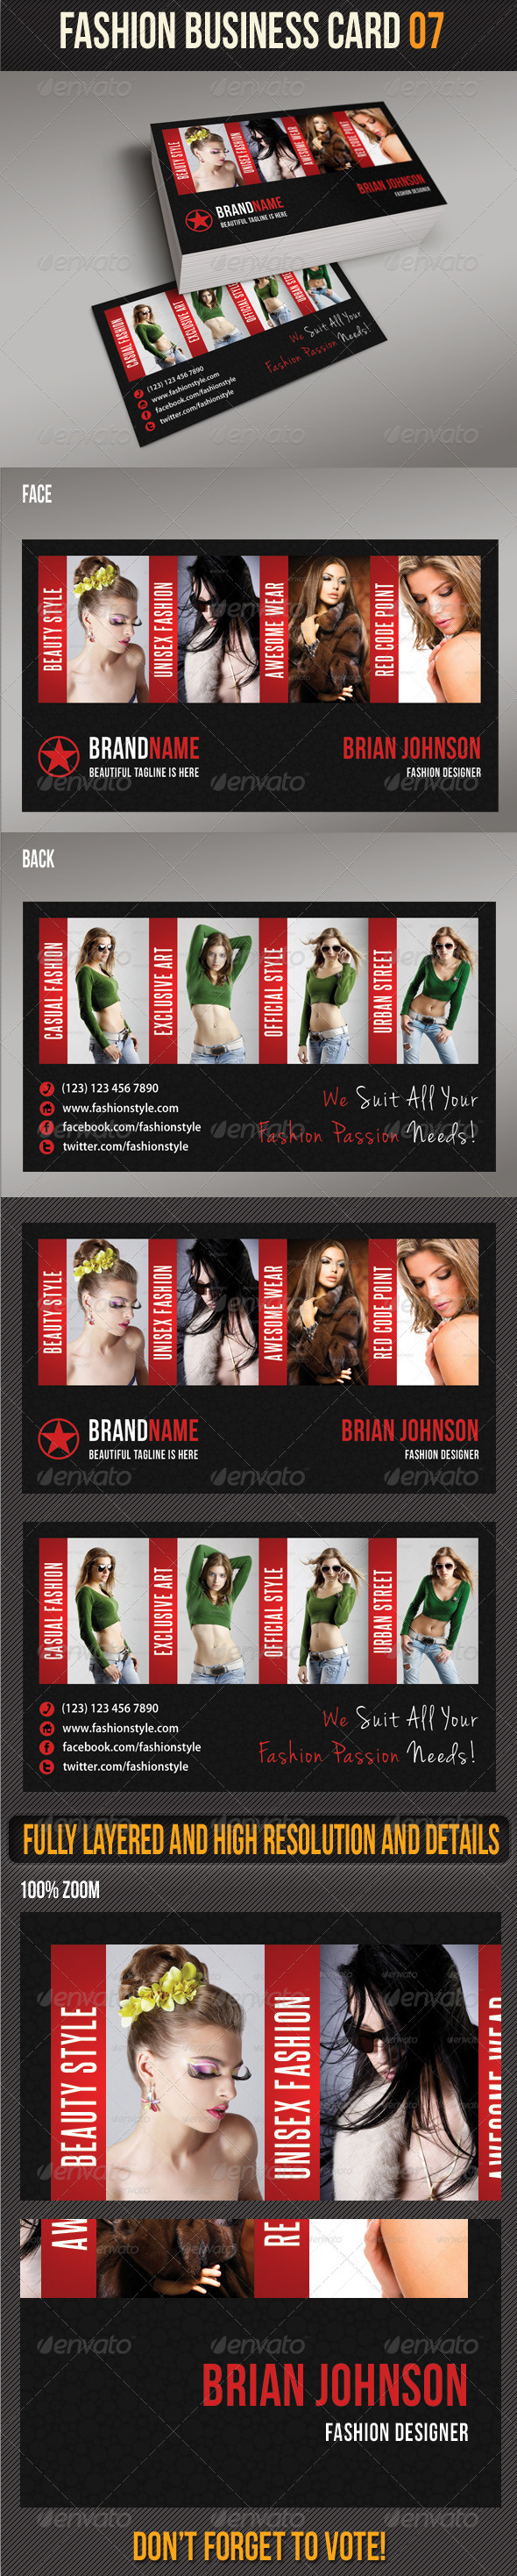 Fashion Business Card 07 - Creative Business Cards